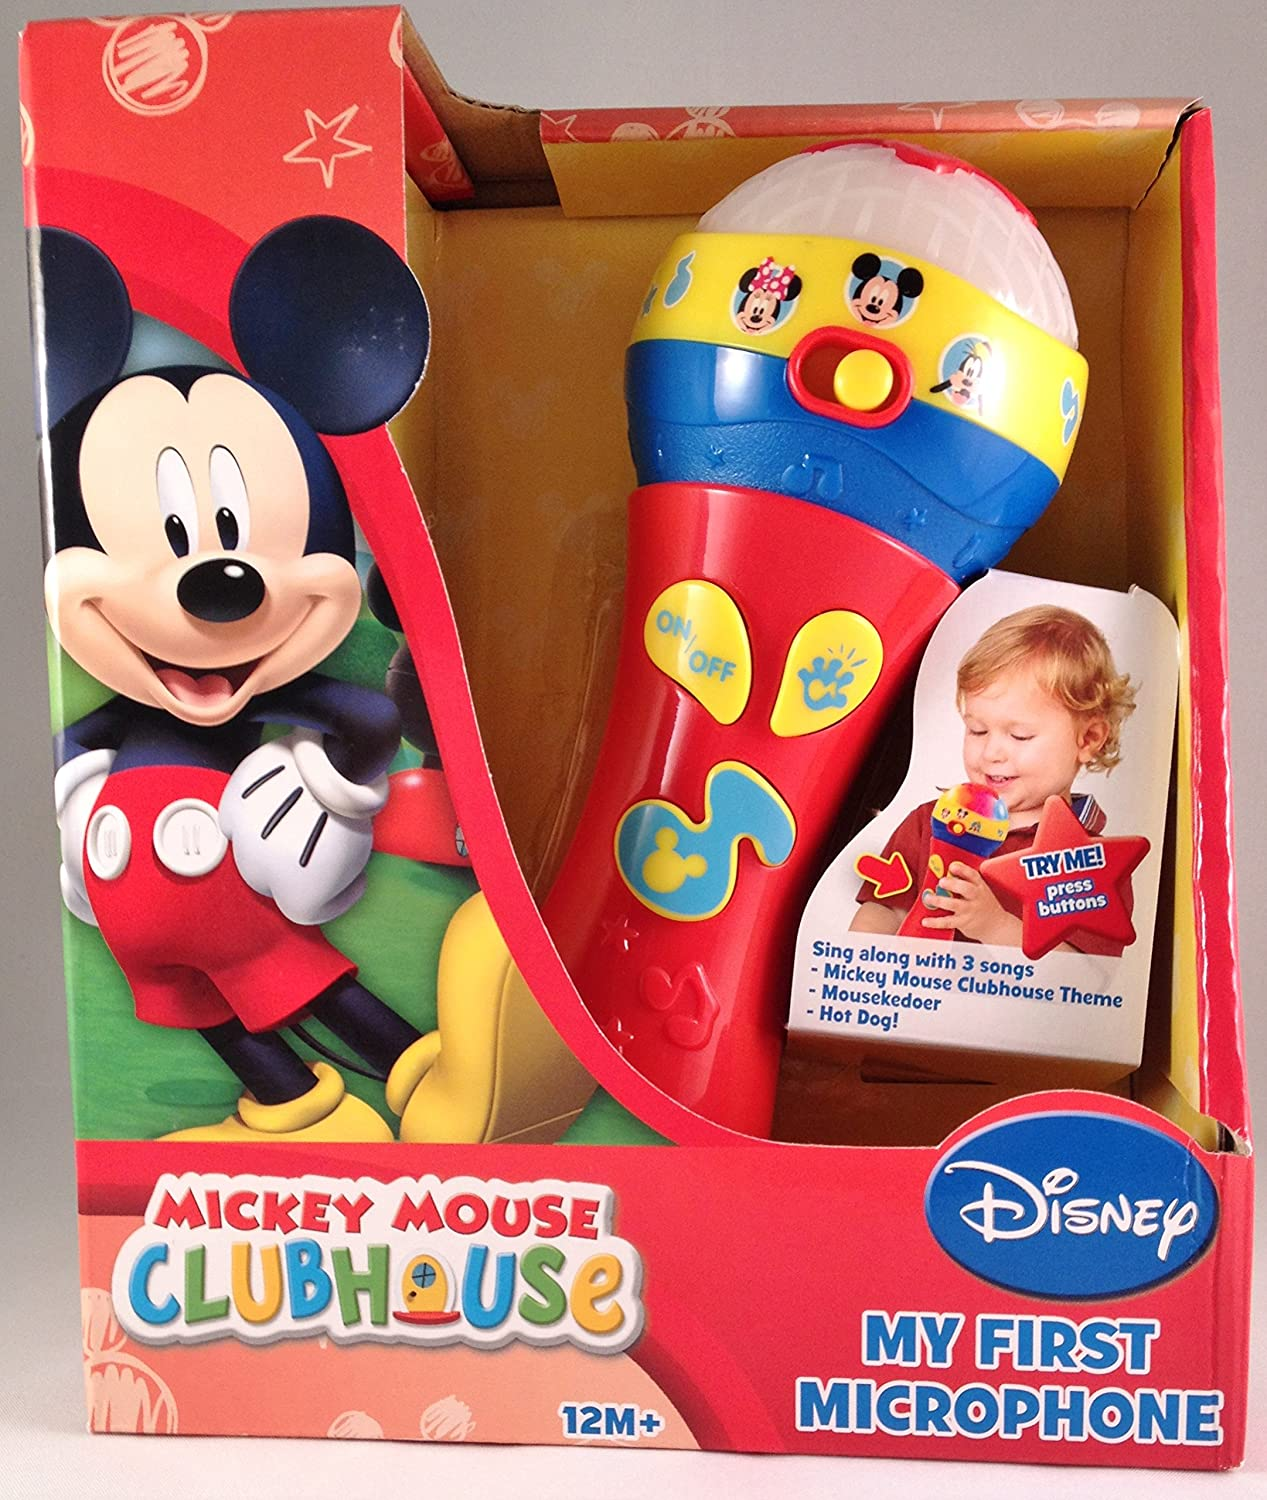 Mickey Mouse Clubhouse Toys Hot Dog Song